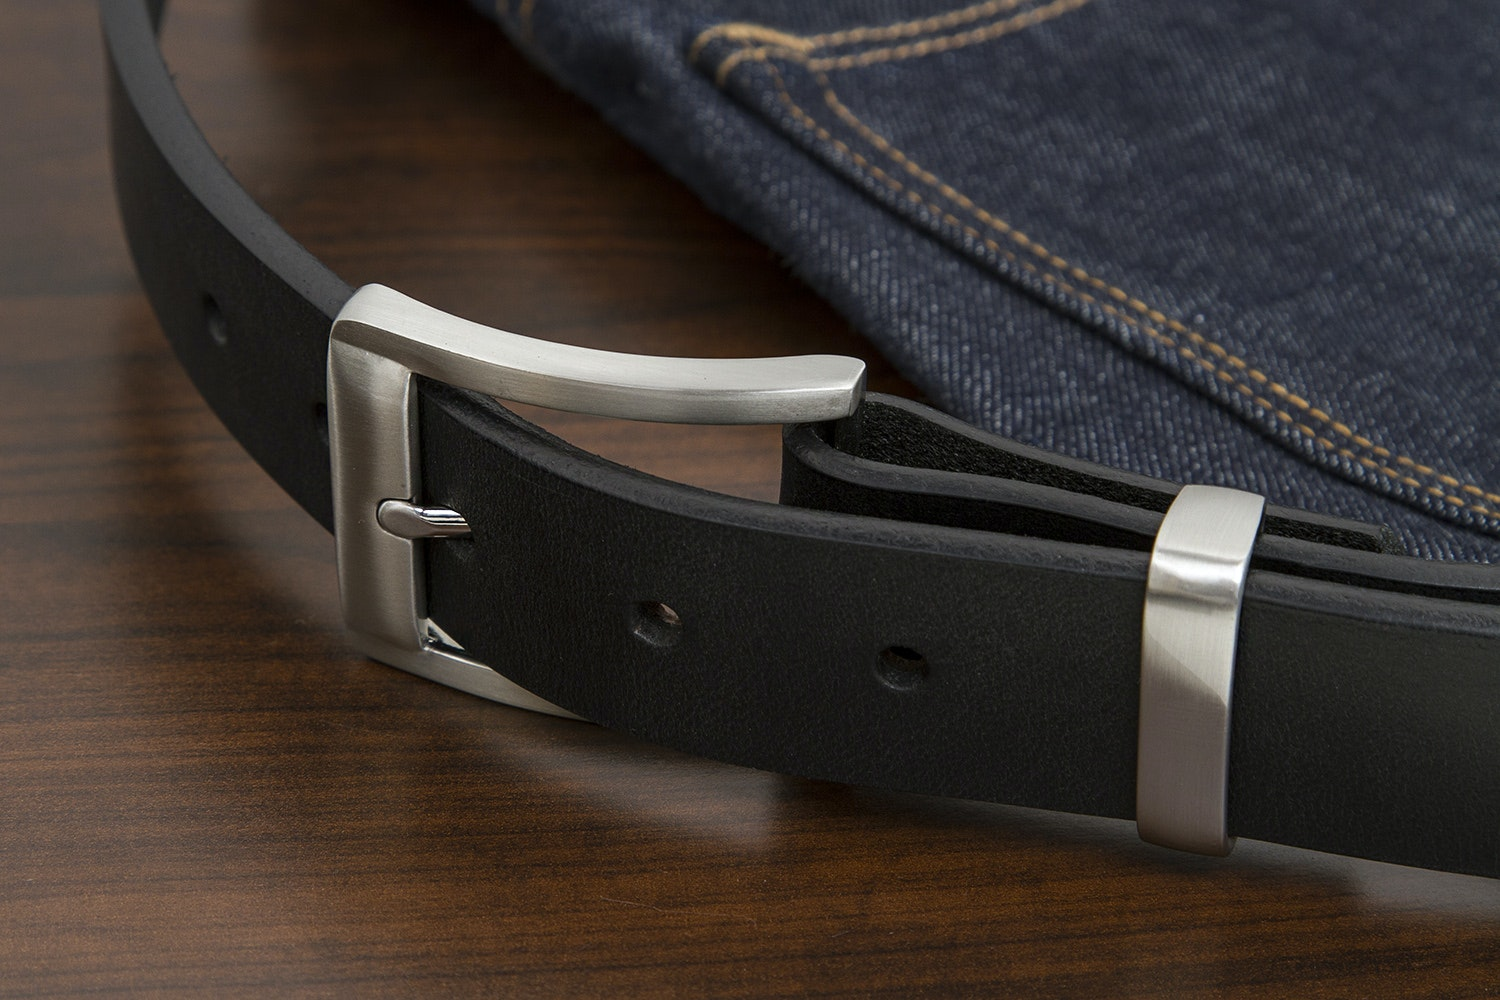 Orion Black Latigo Belt